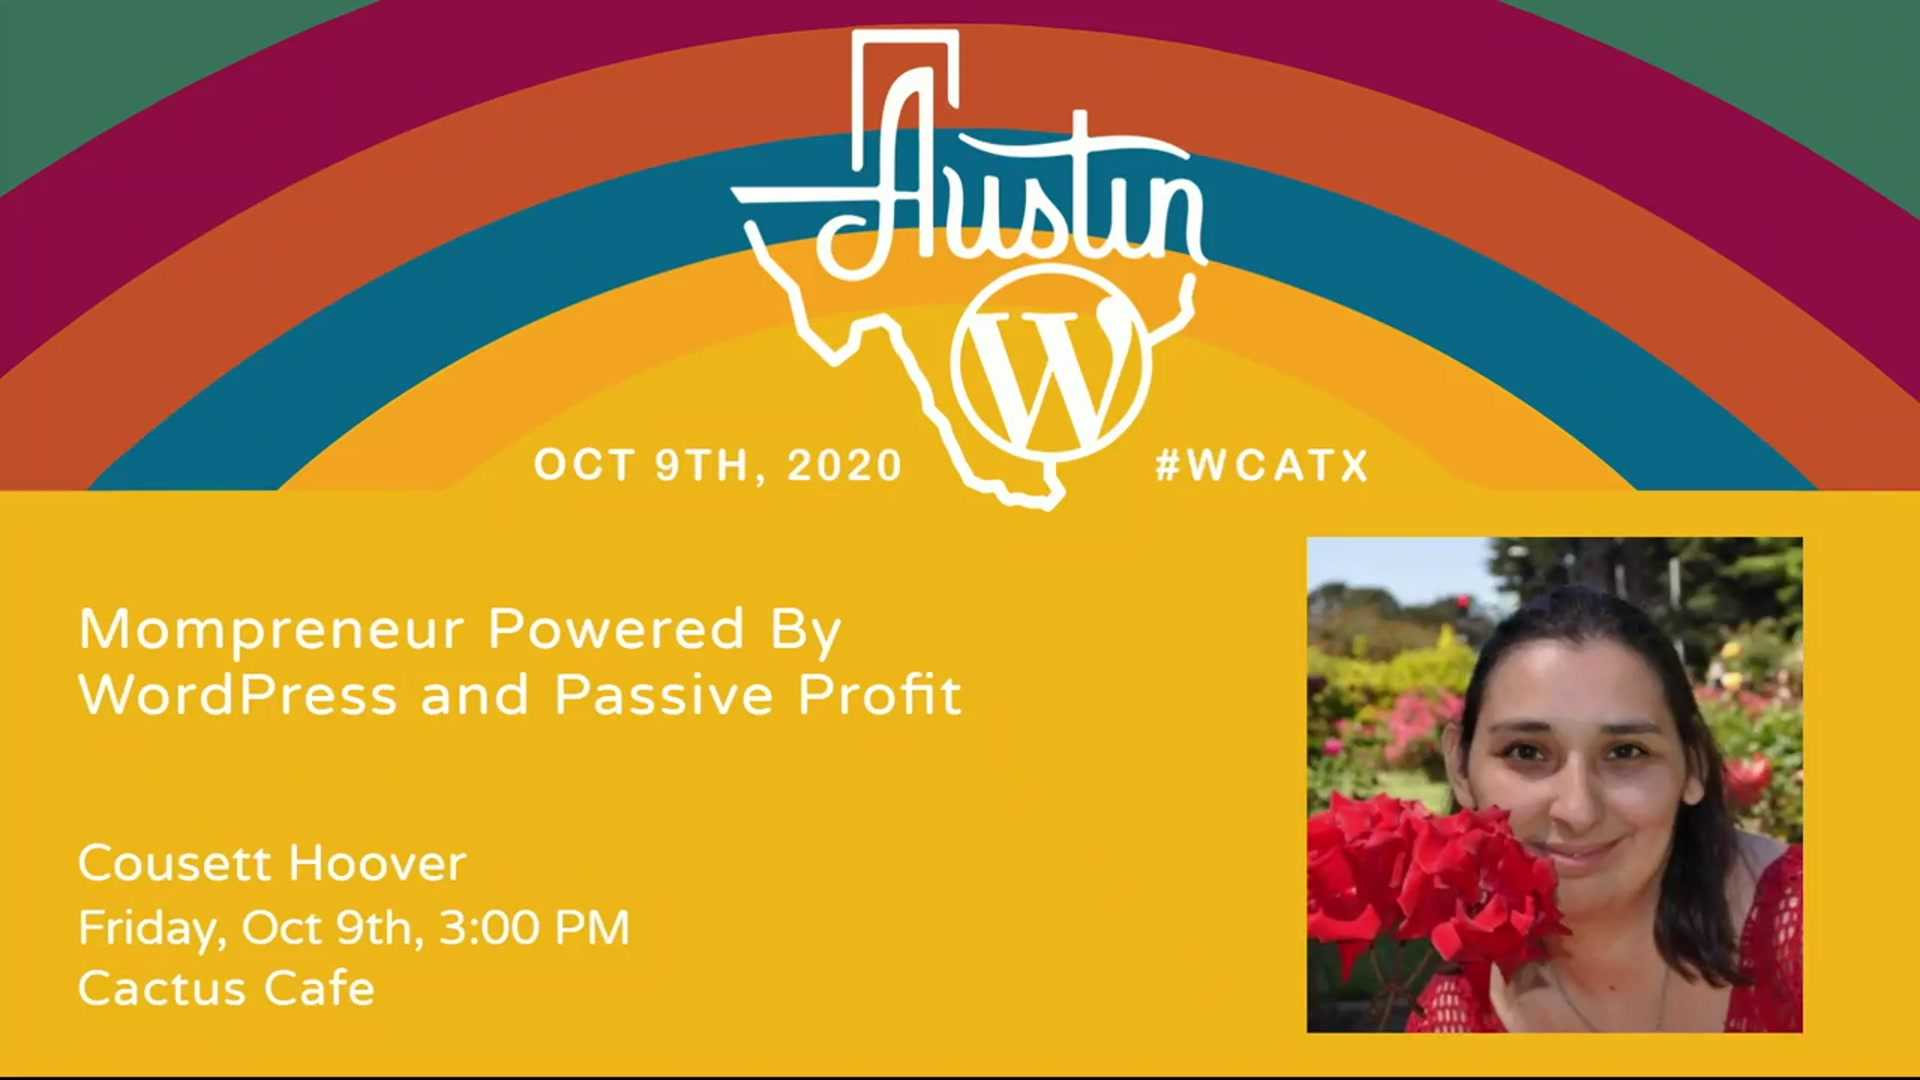 Cousett Hoover: Mompreneur Powered By WordPress and Passive Profit